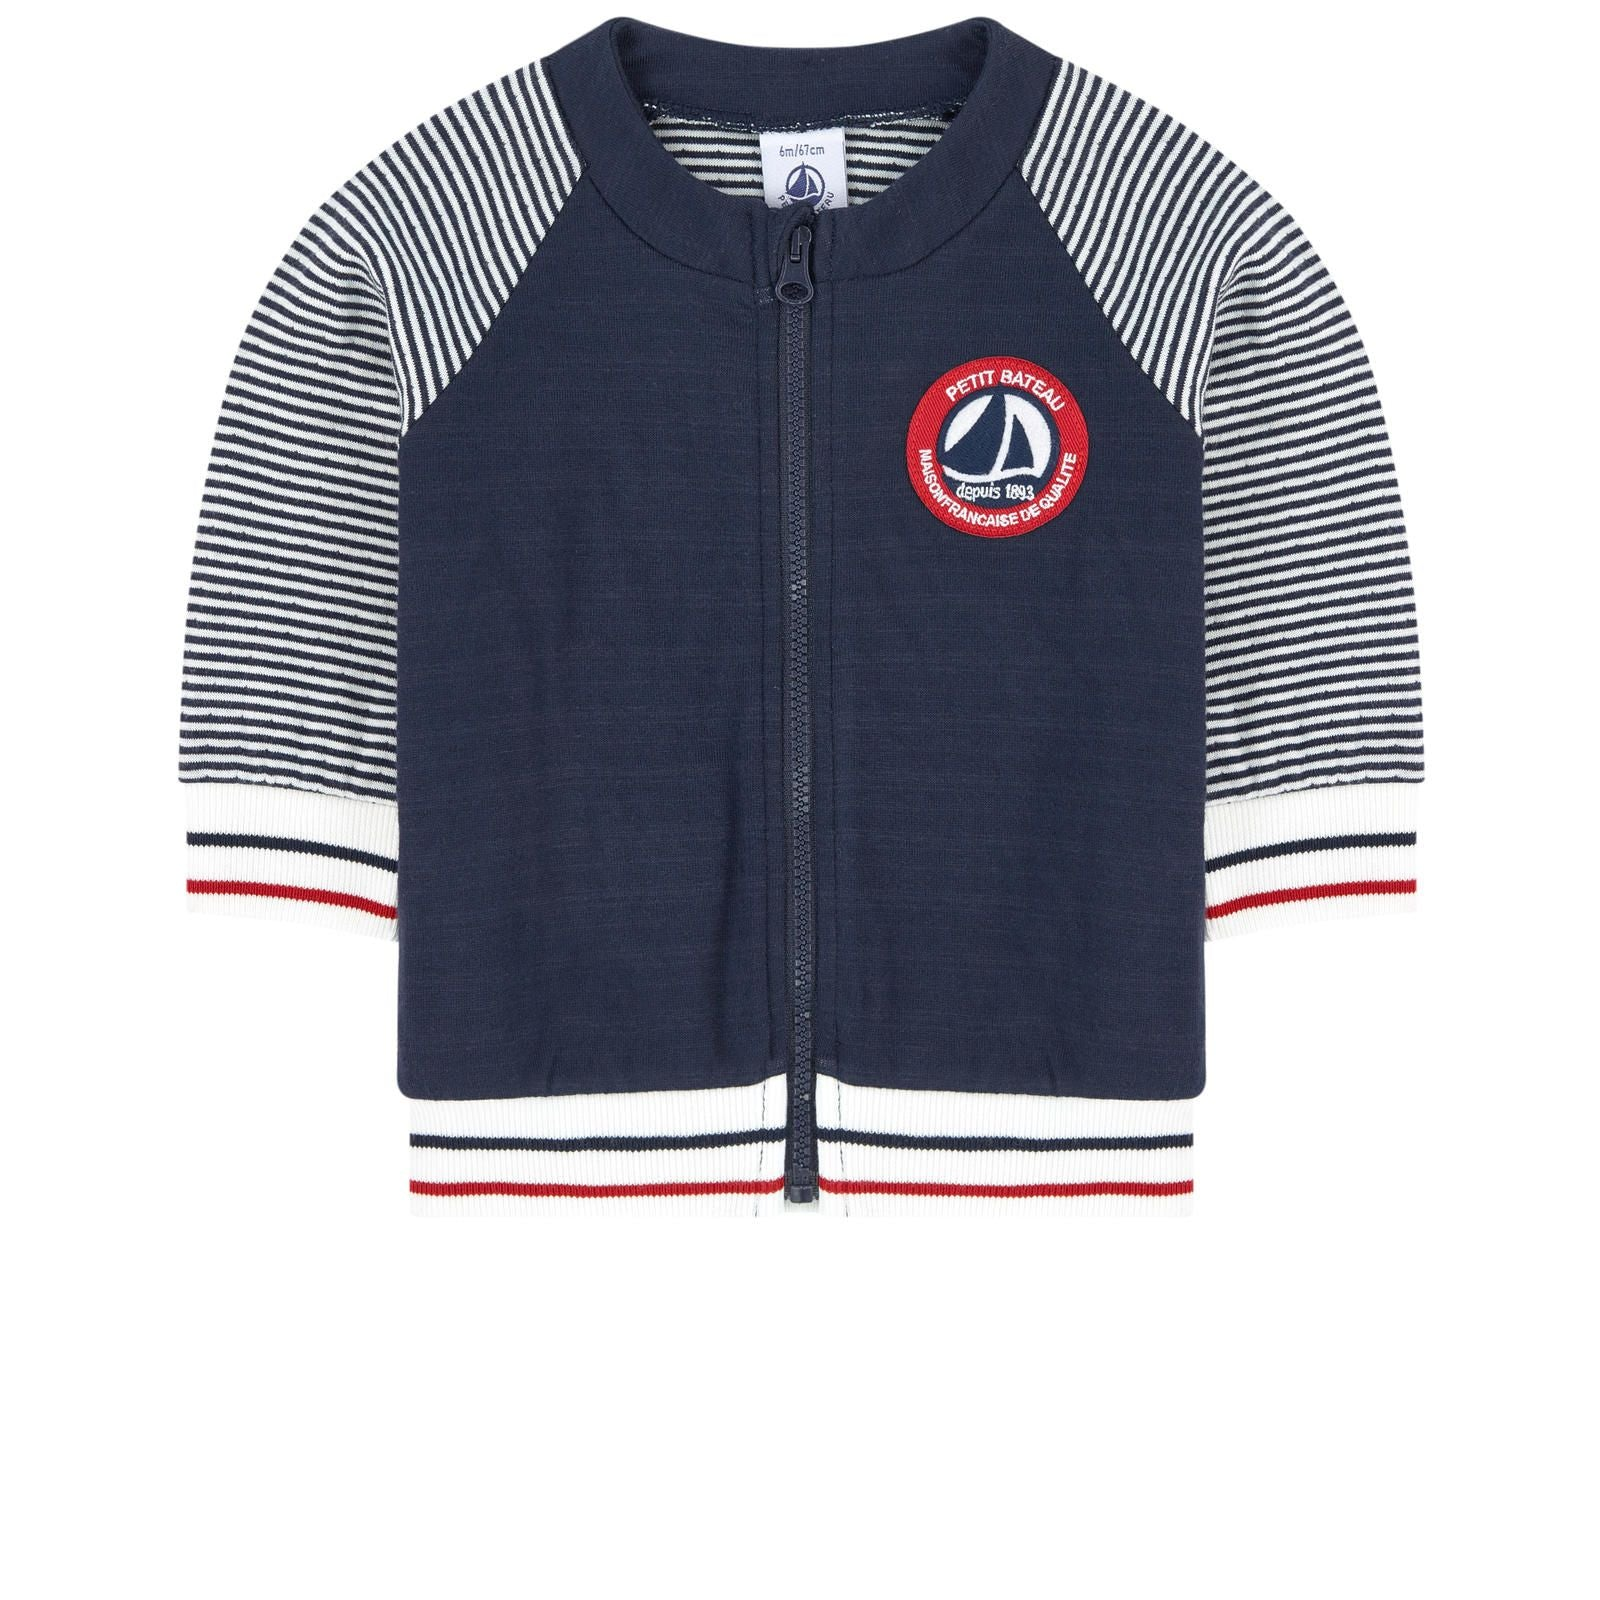 Petit Bateau Blue & White Zip-Up Top